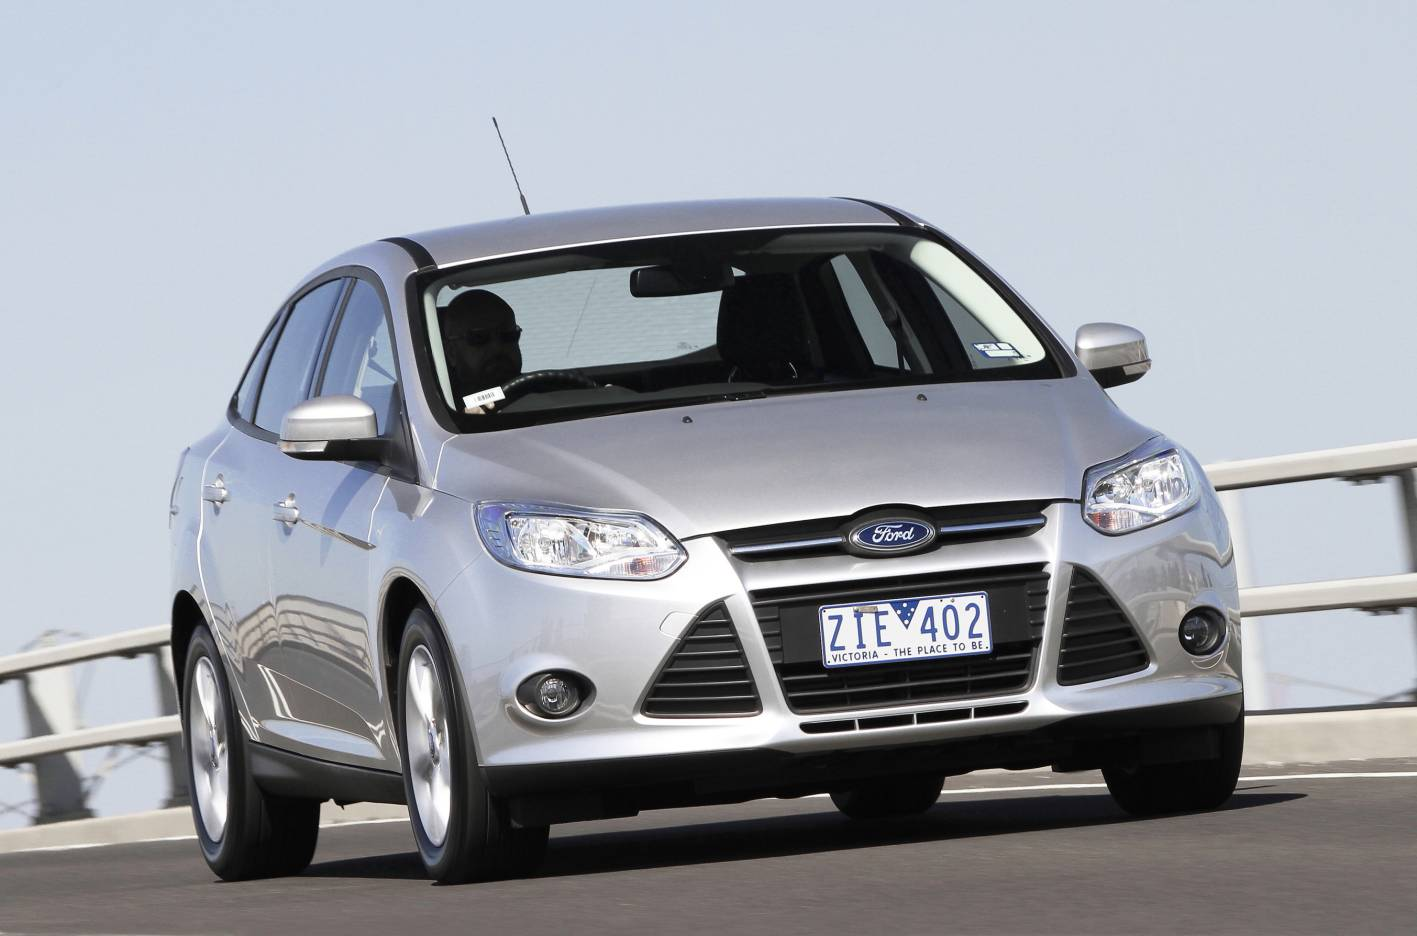 Ford Focus Transmission Problems — Auto Expert by John Cadogan